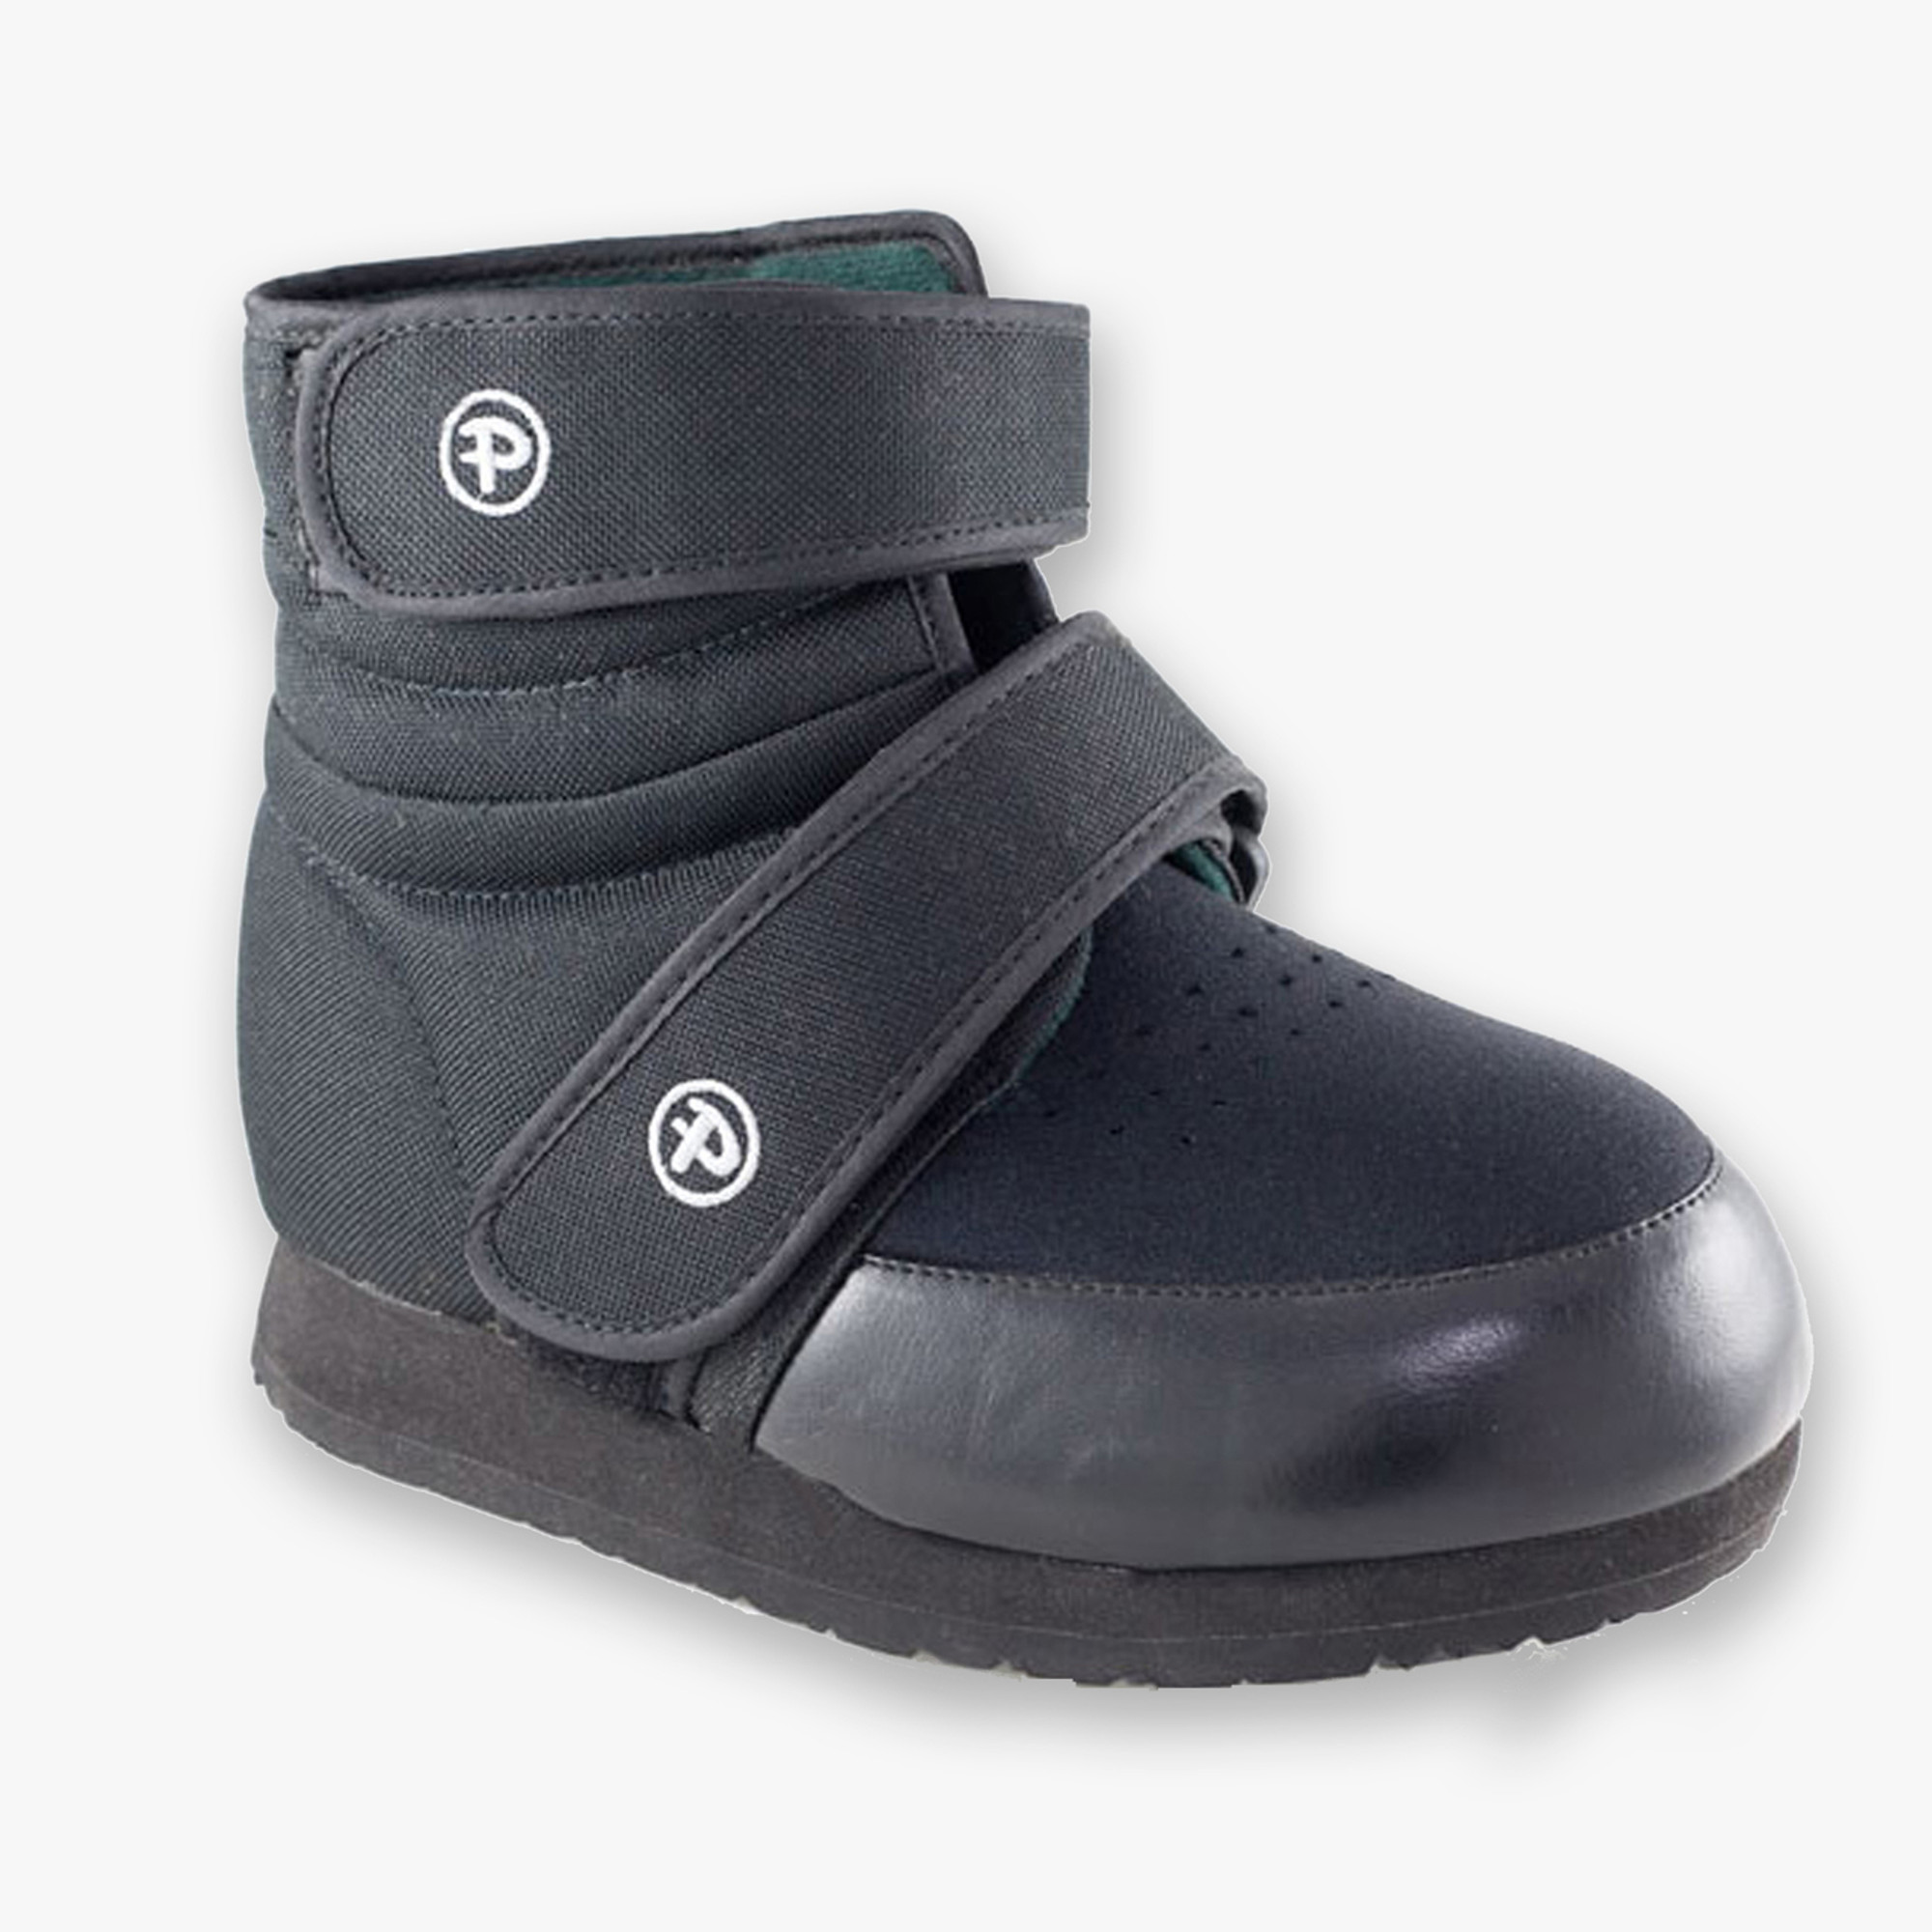 High Top Leather Shoes For Orthotics